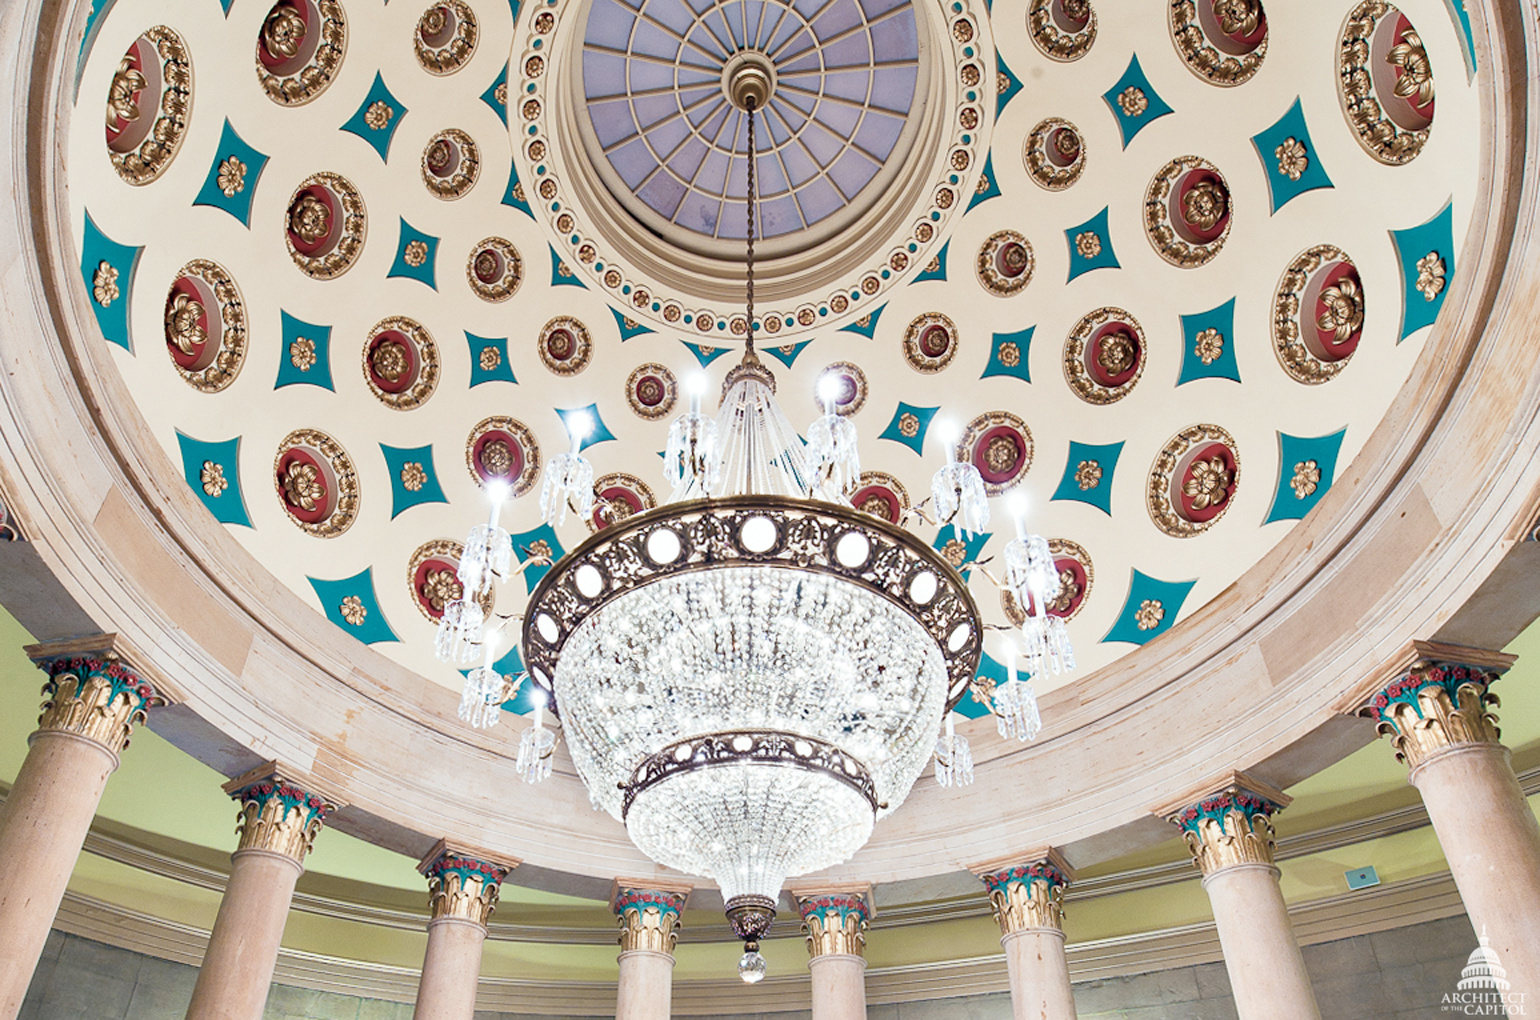 Small senate rotunda chandelier architect of the capitol united download link is external aloadofball Gallery